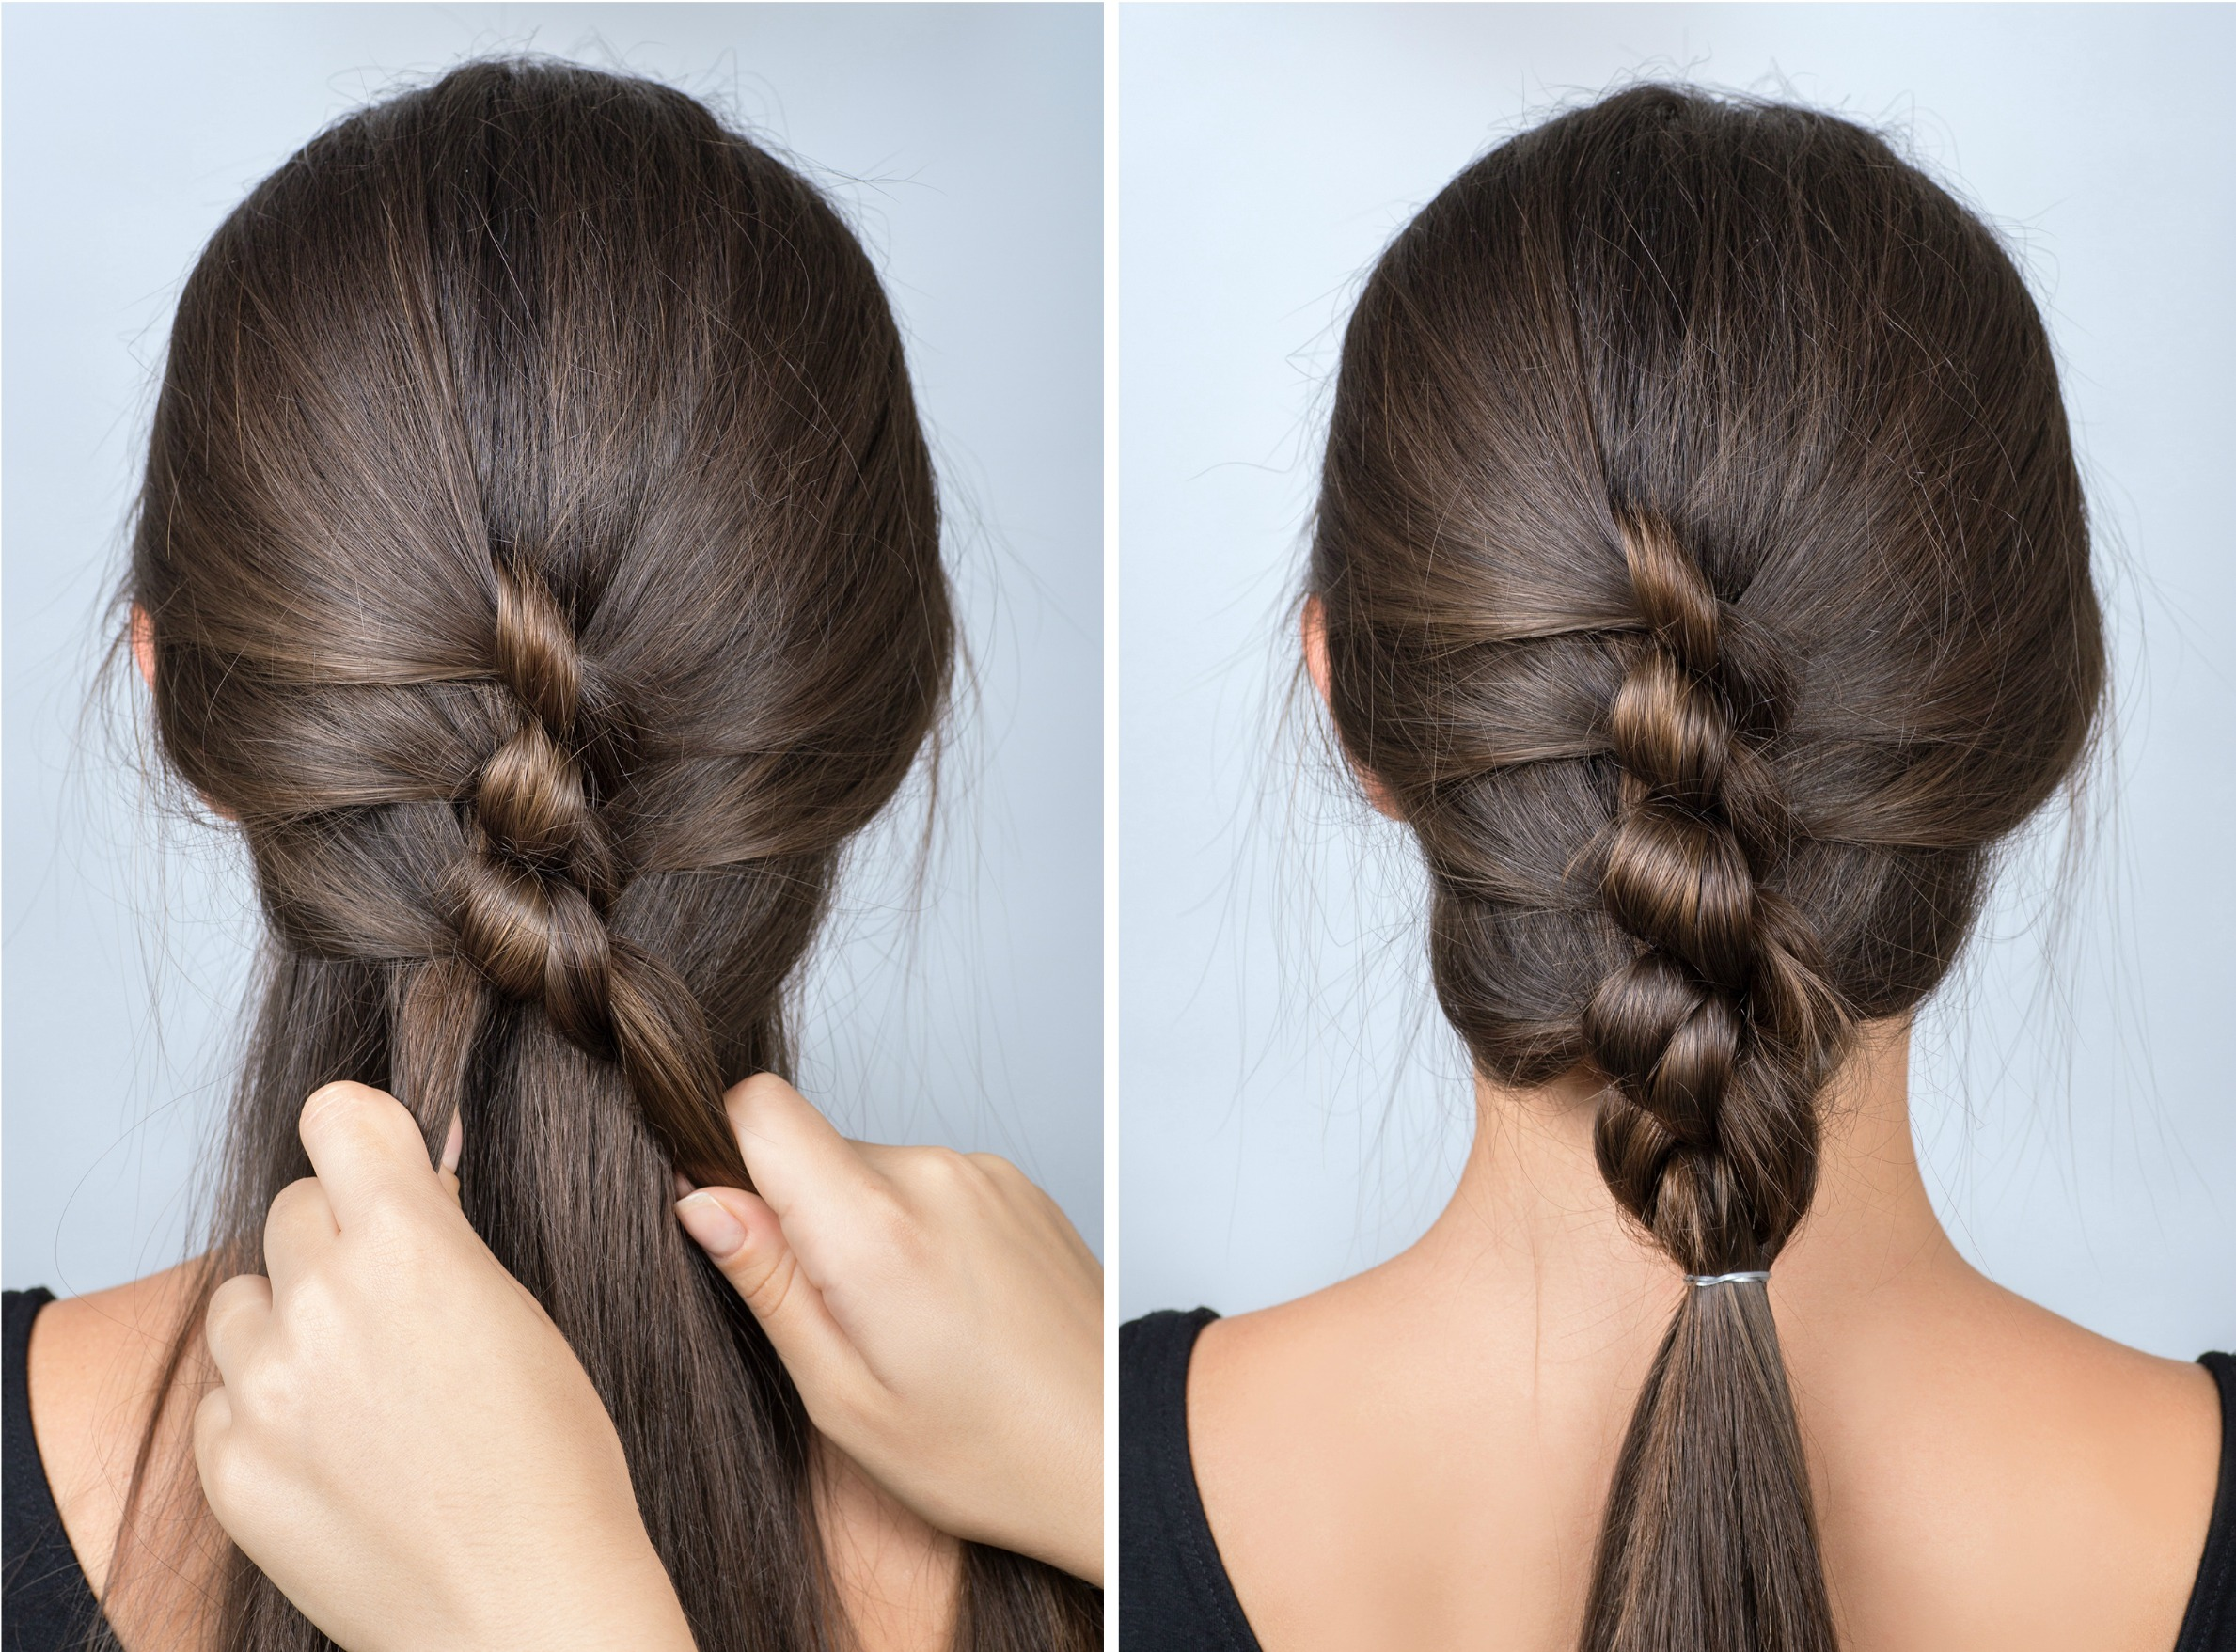 Twisted Braid: Simple hairstyle for school Tutorial - Uplifting Mayhem